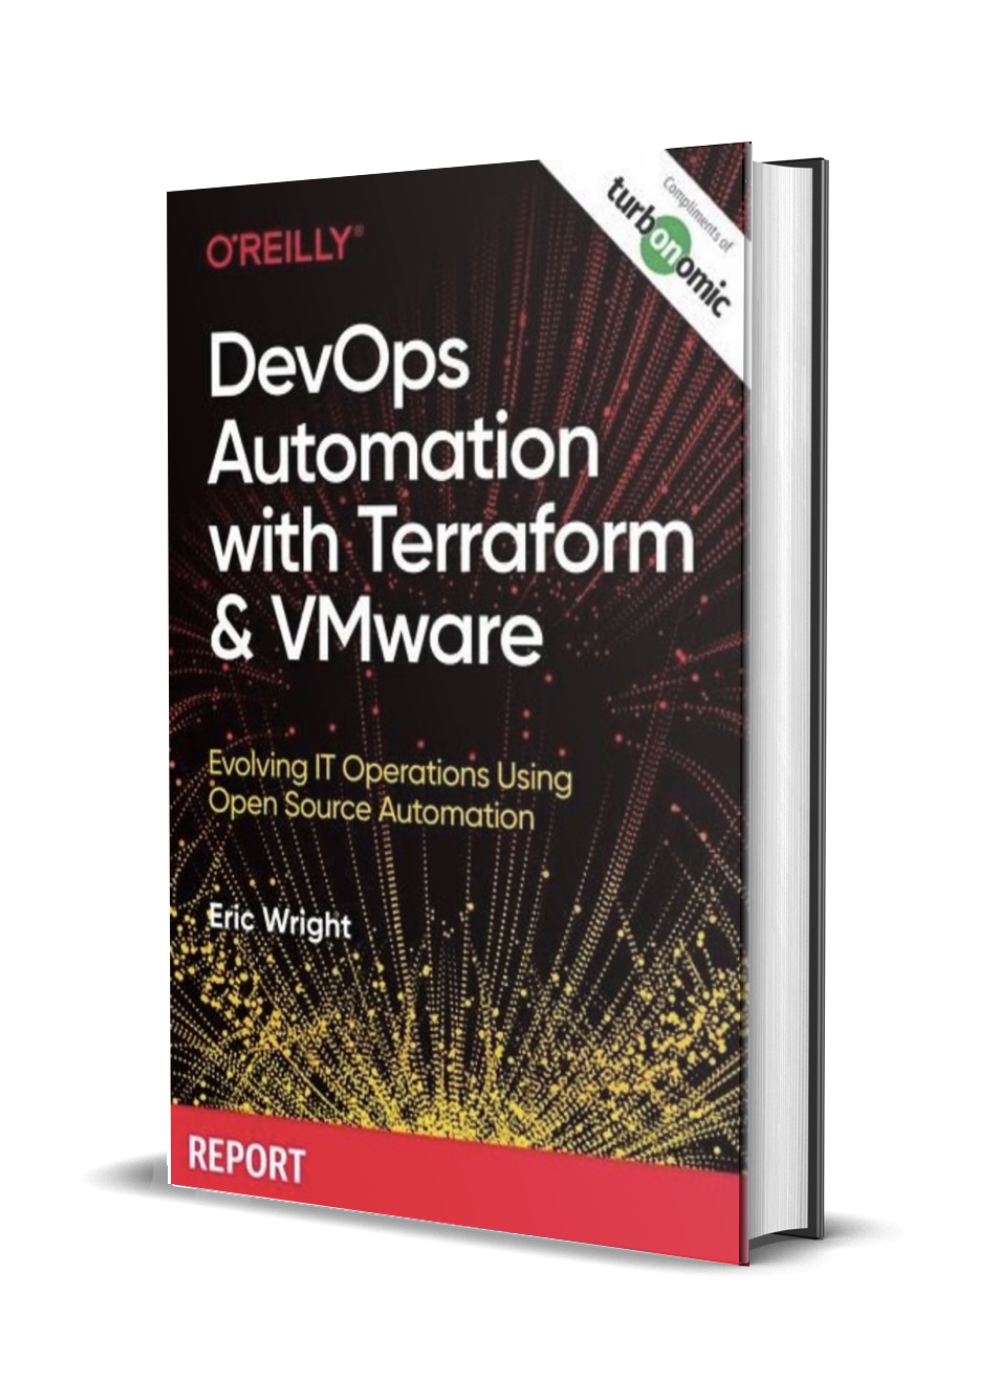 DevOps Automation with Terraform & VMware